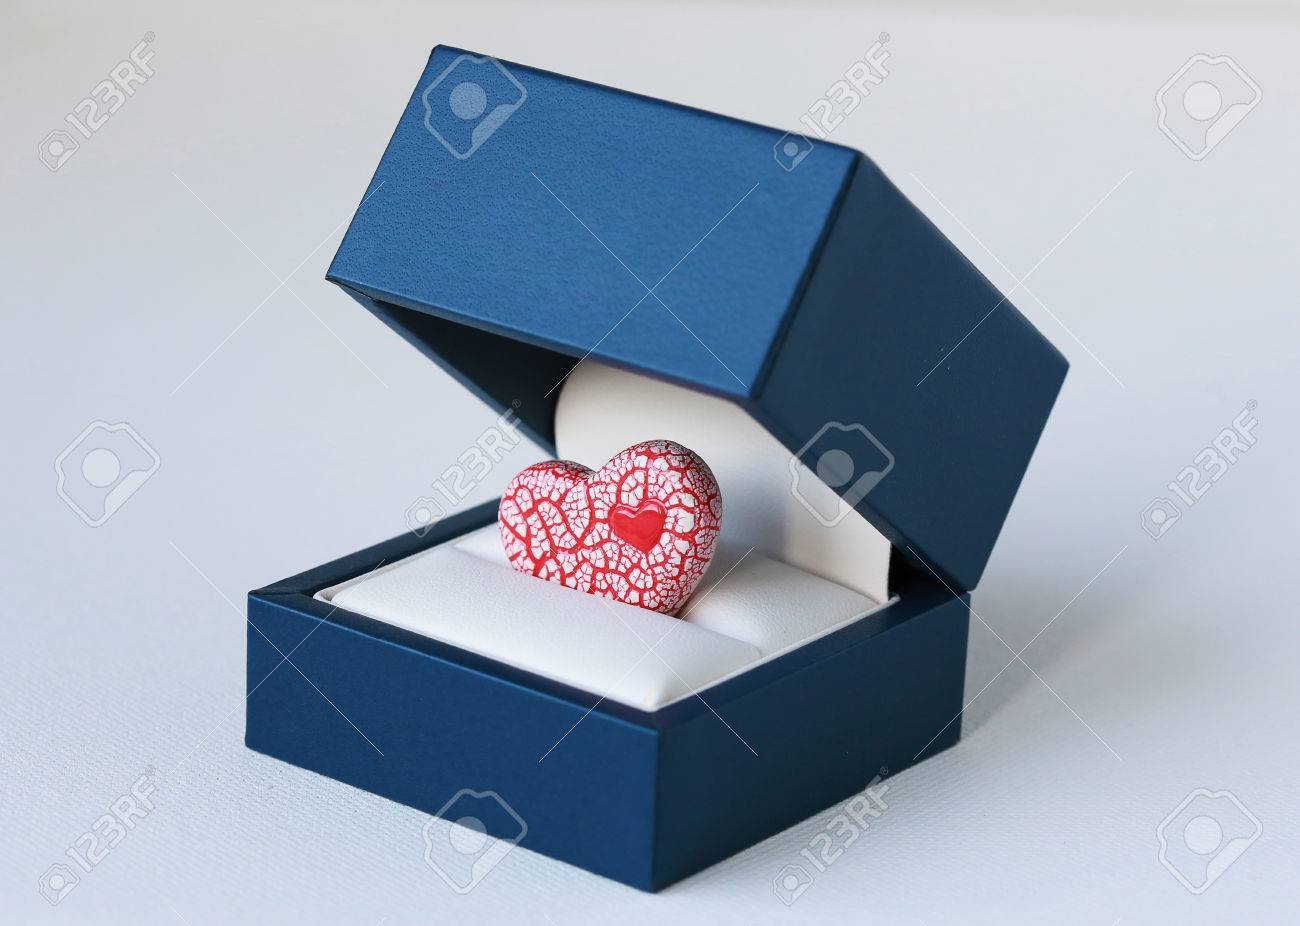 An Image Of A Bright Red And White Ceramic Heart Inside A Blue